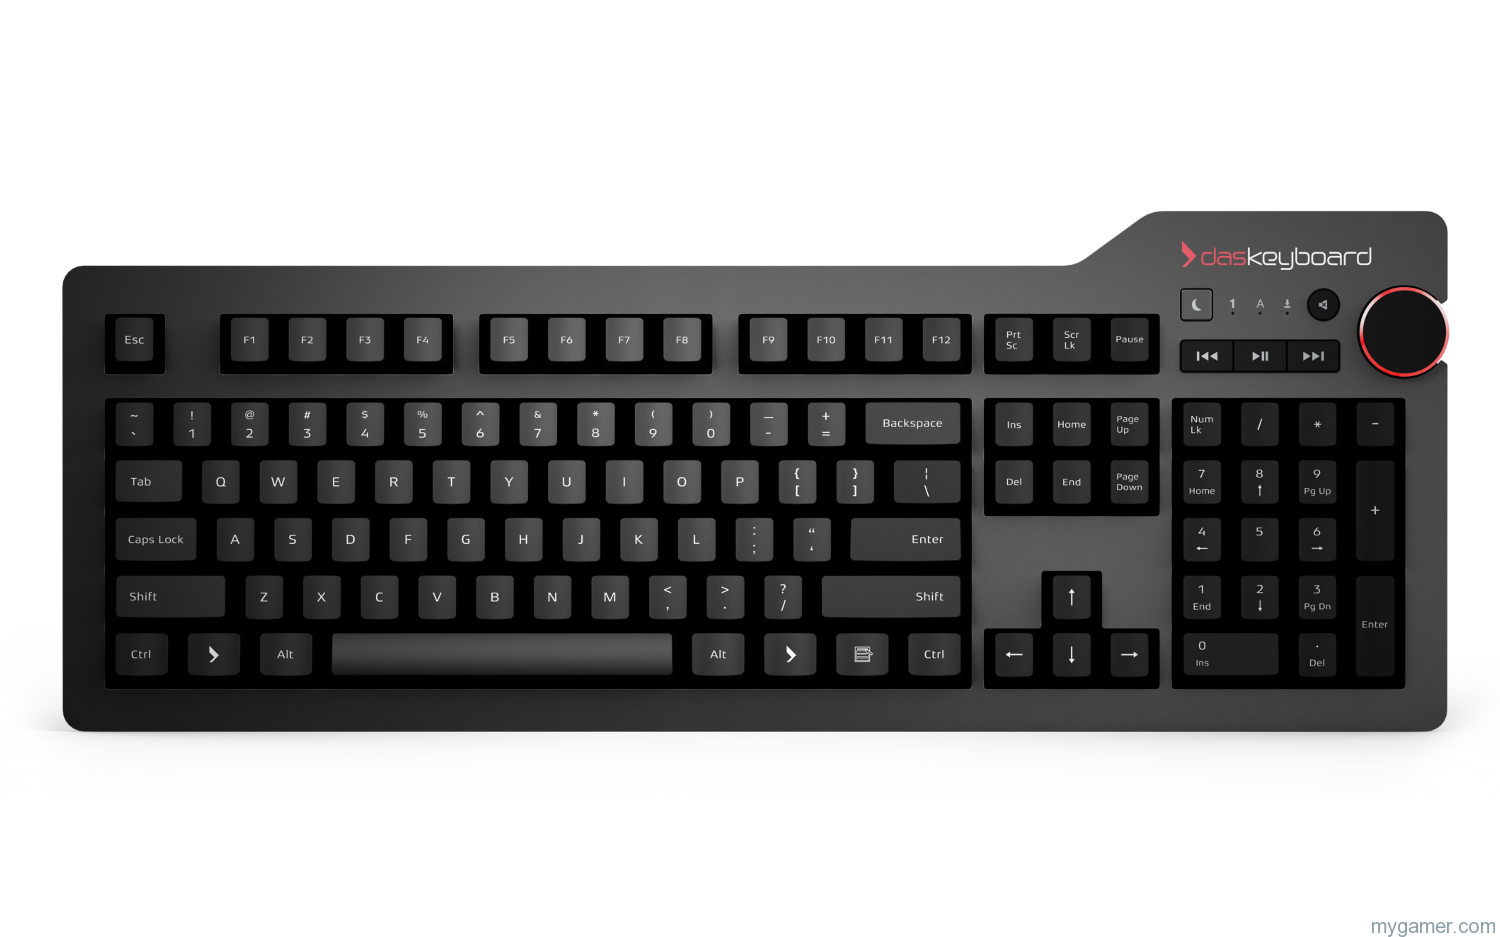 Das Keyboard 4 Professional Review Das Keyboard 4 Professional Review daskeyboard 4 professional front view